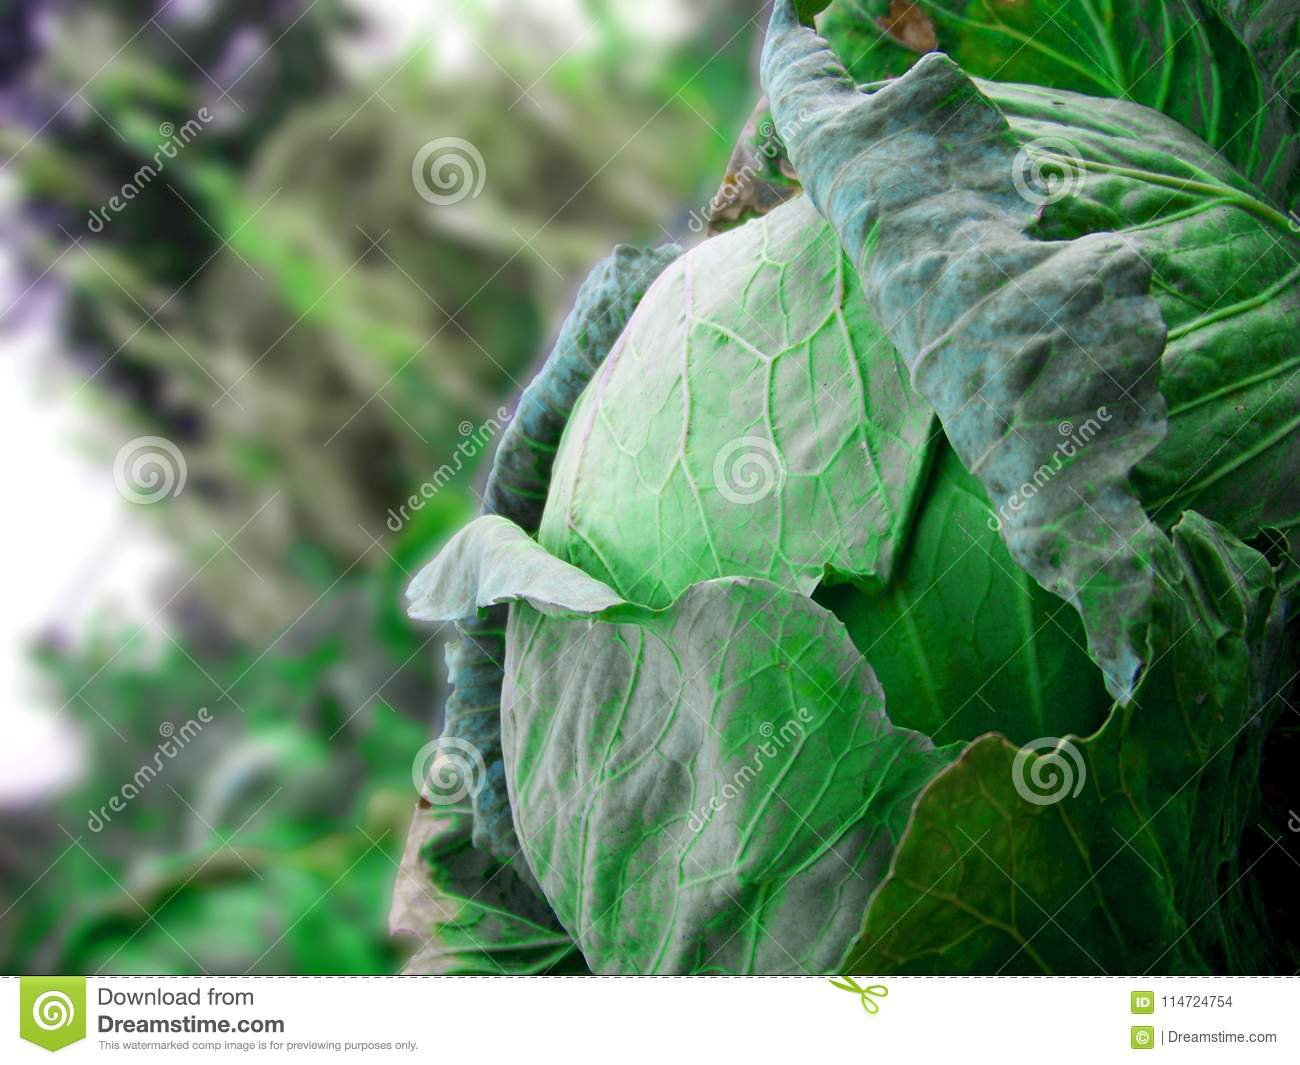 A full green mature cabbage in the garden with corns in the background.